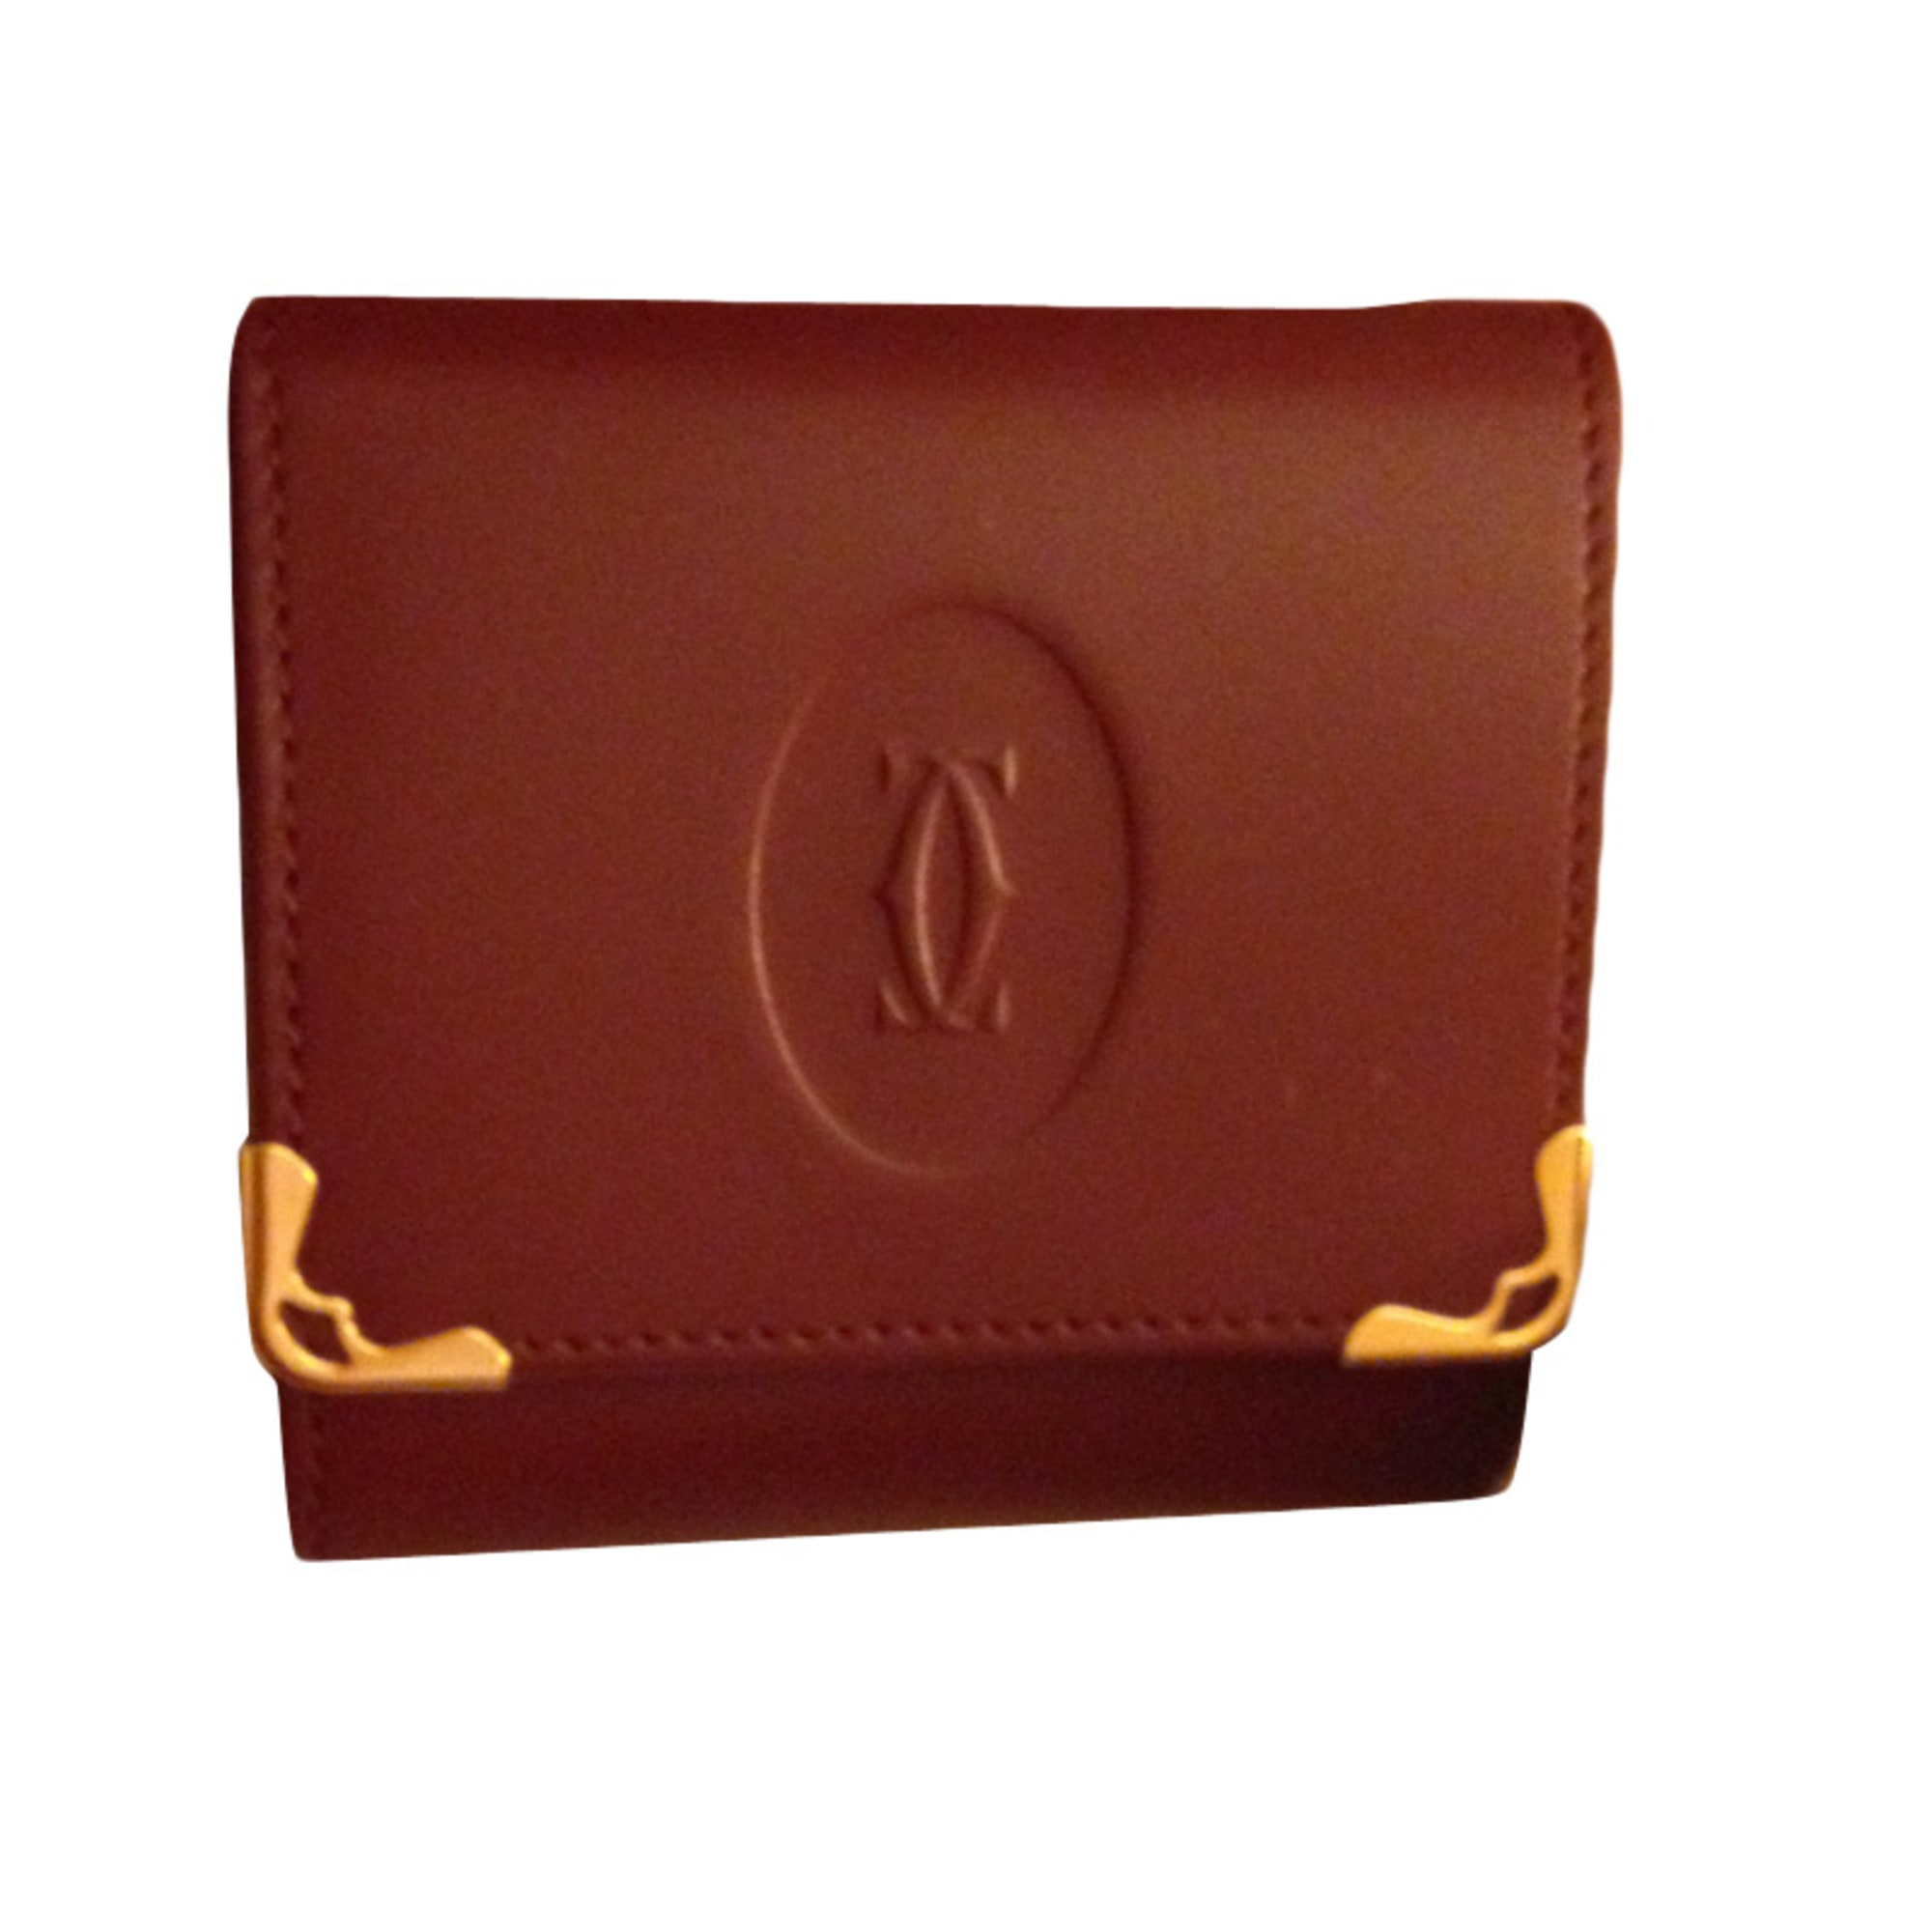 porte monnaie cartier marcello rouge bordeaux